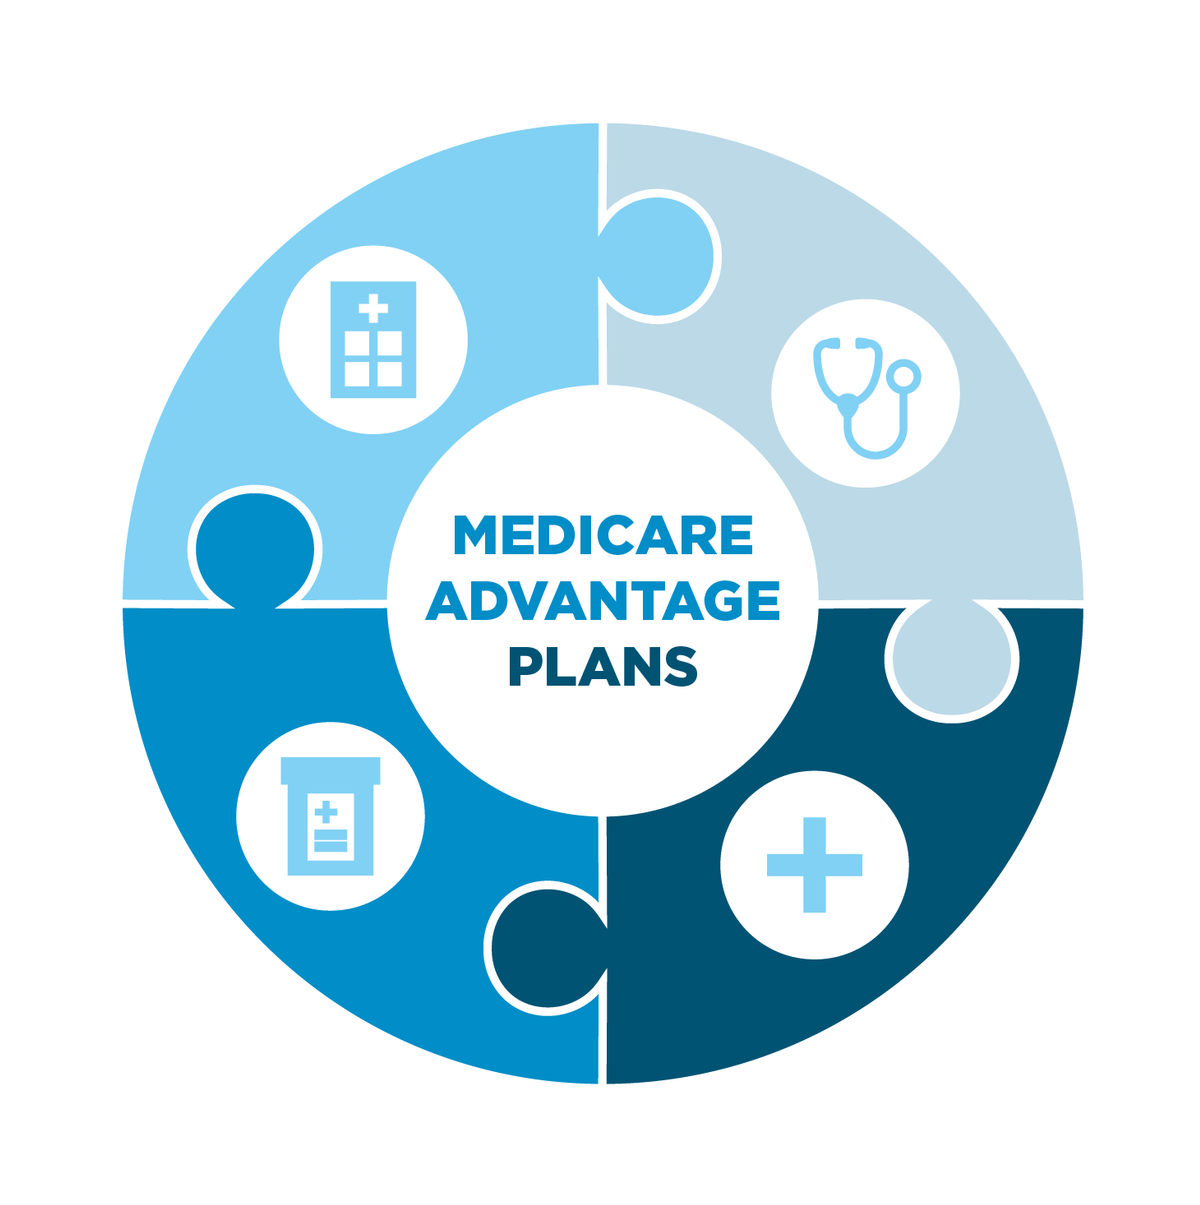 How To Grow Your Home Care Business With Medicare Advantage